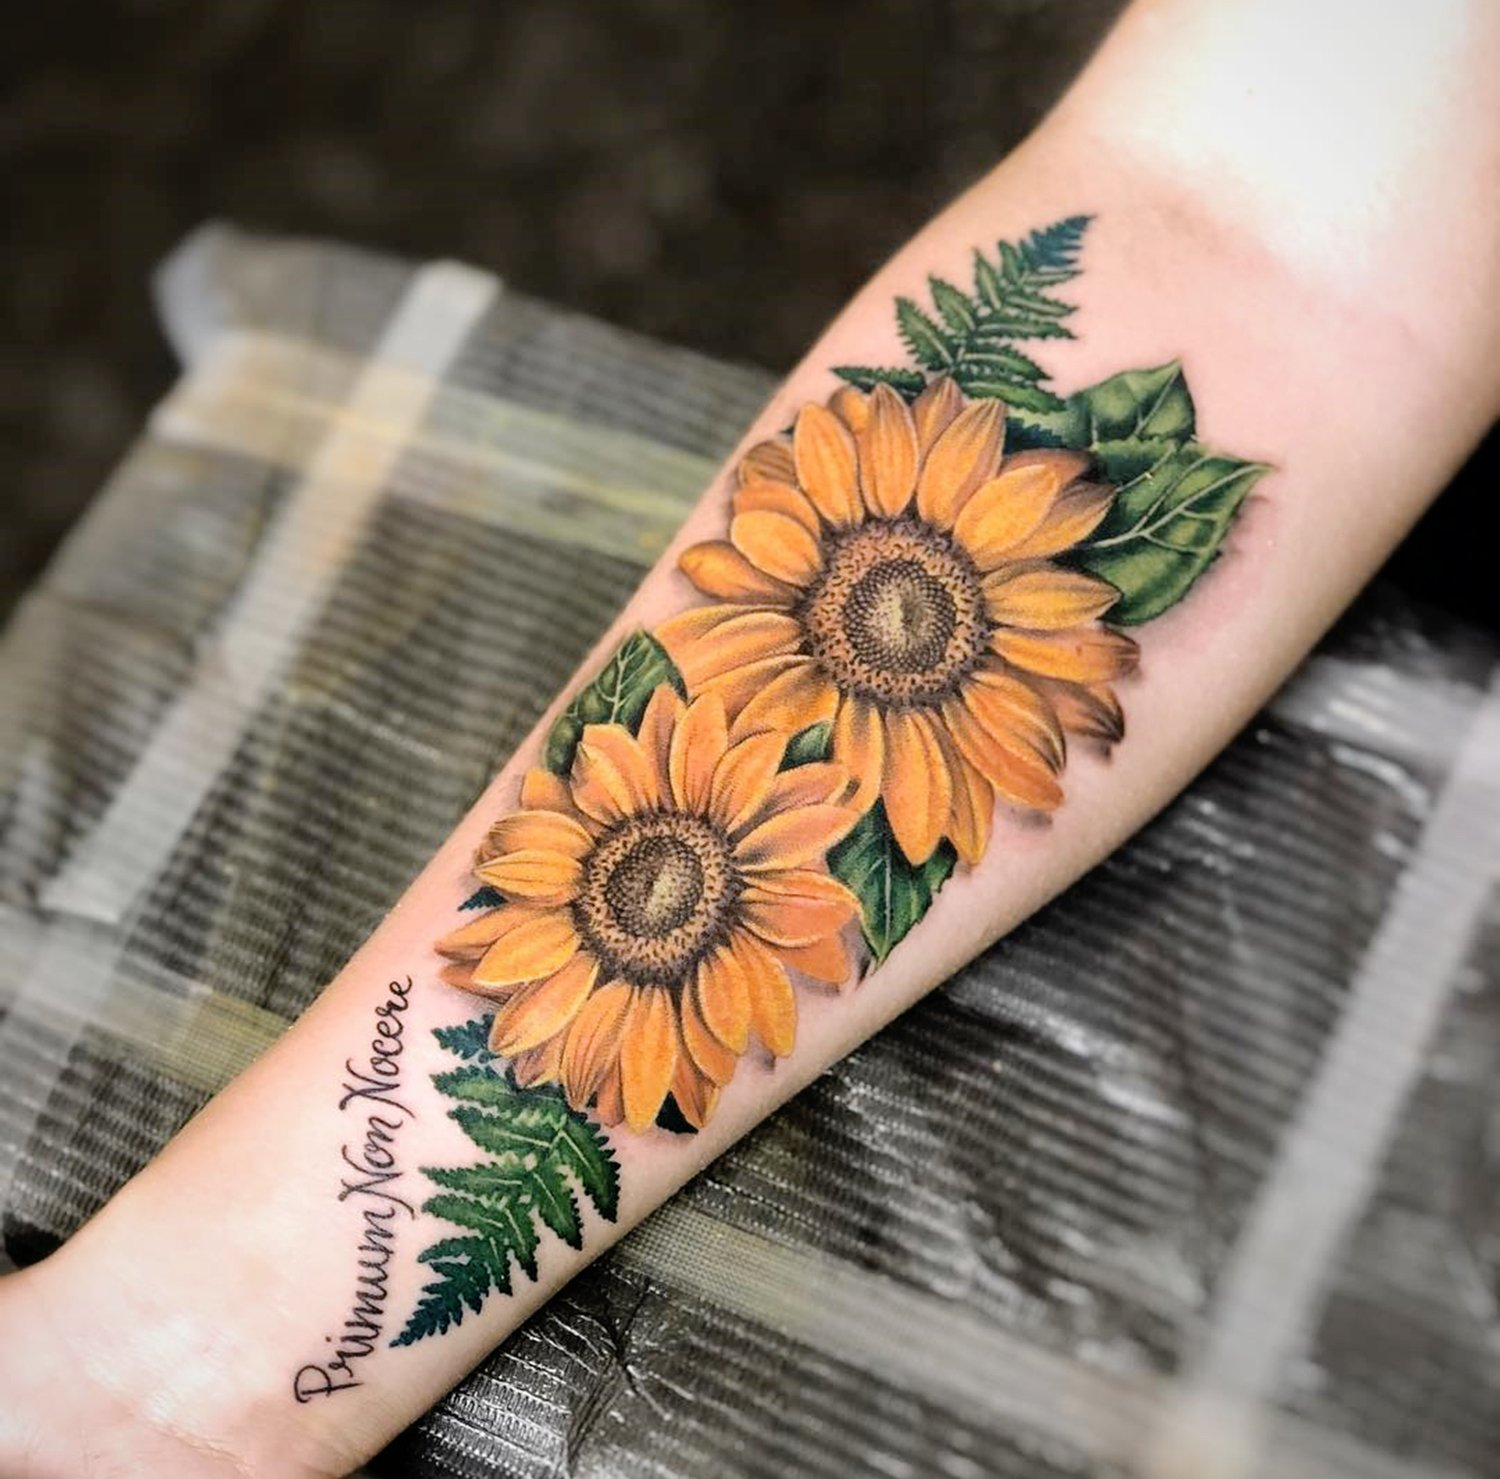 flowers tattoo done at van isle tattoo expo